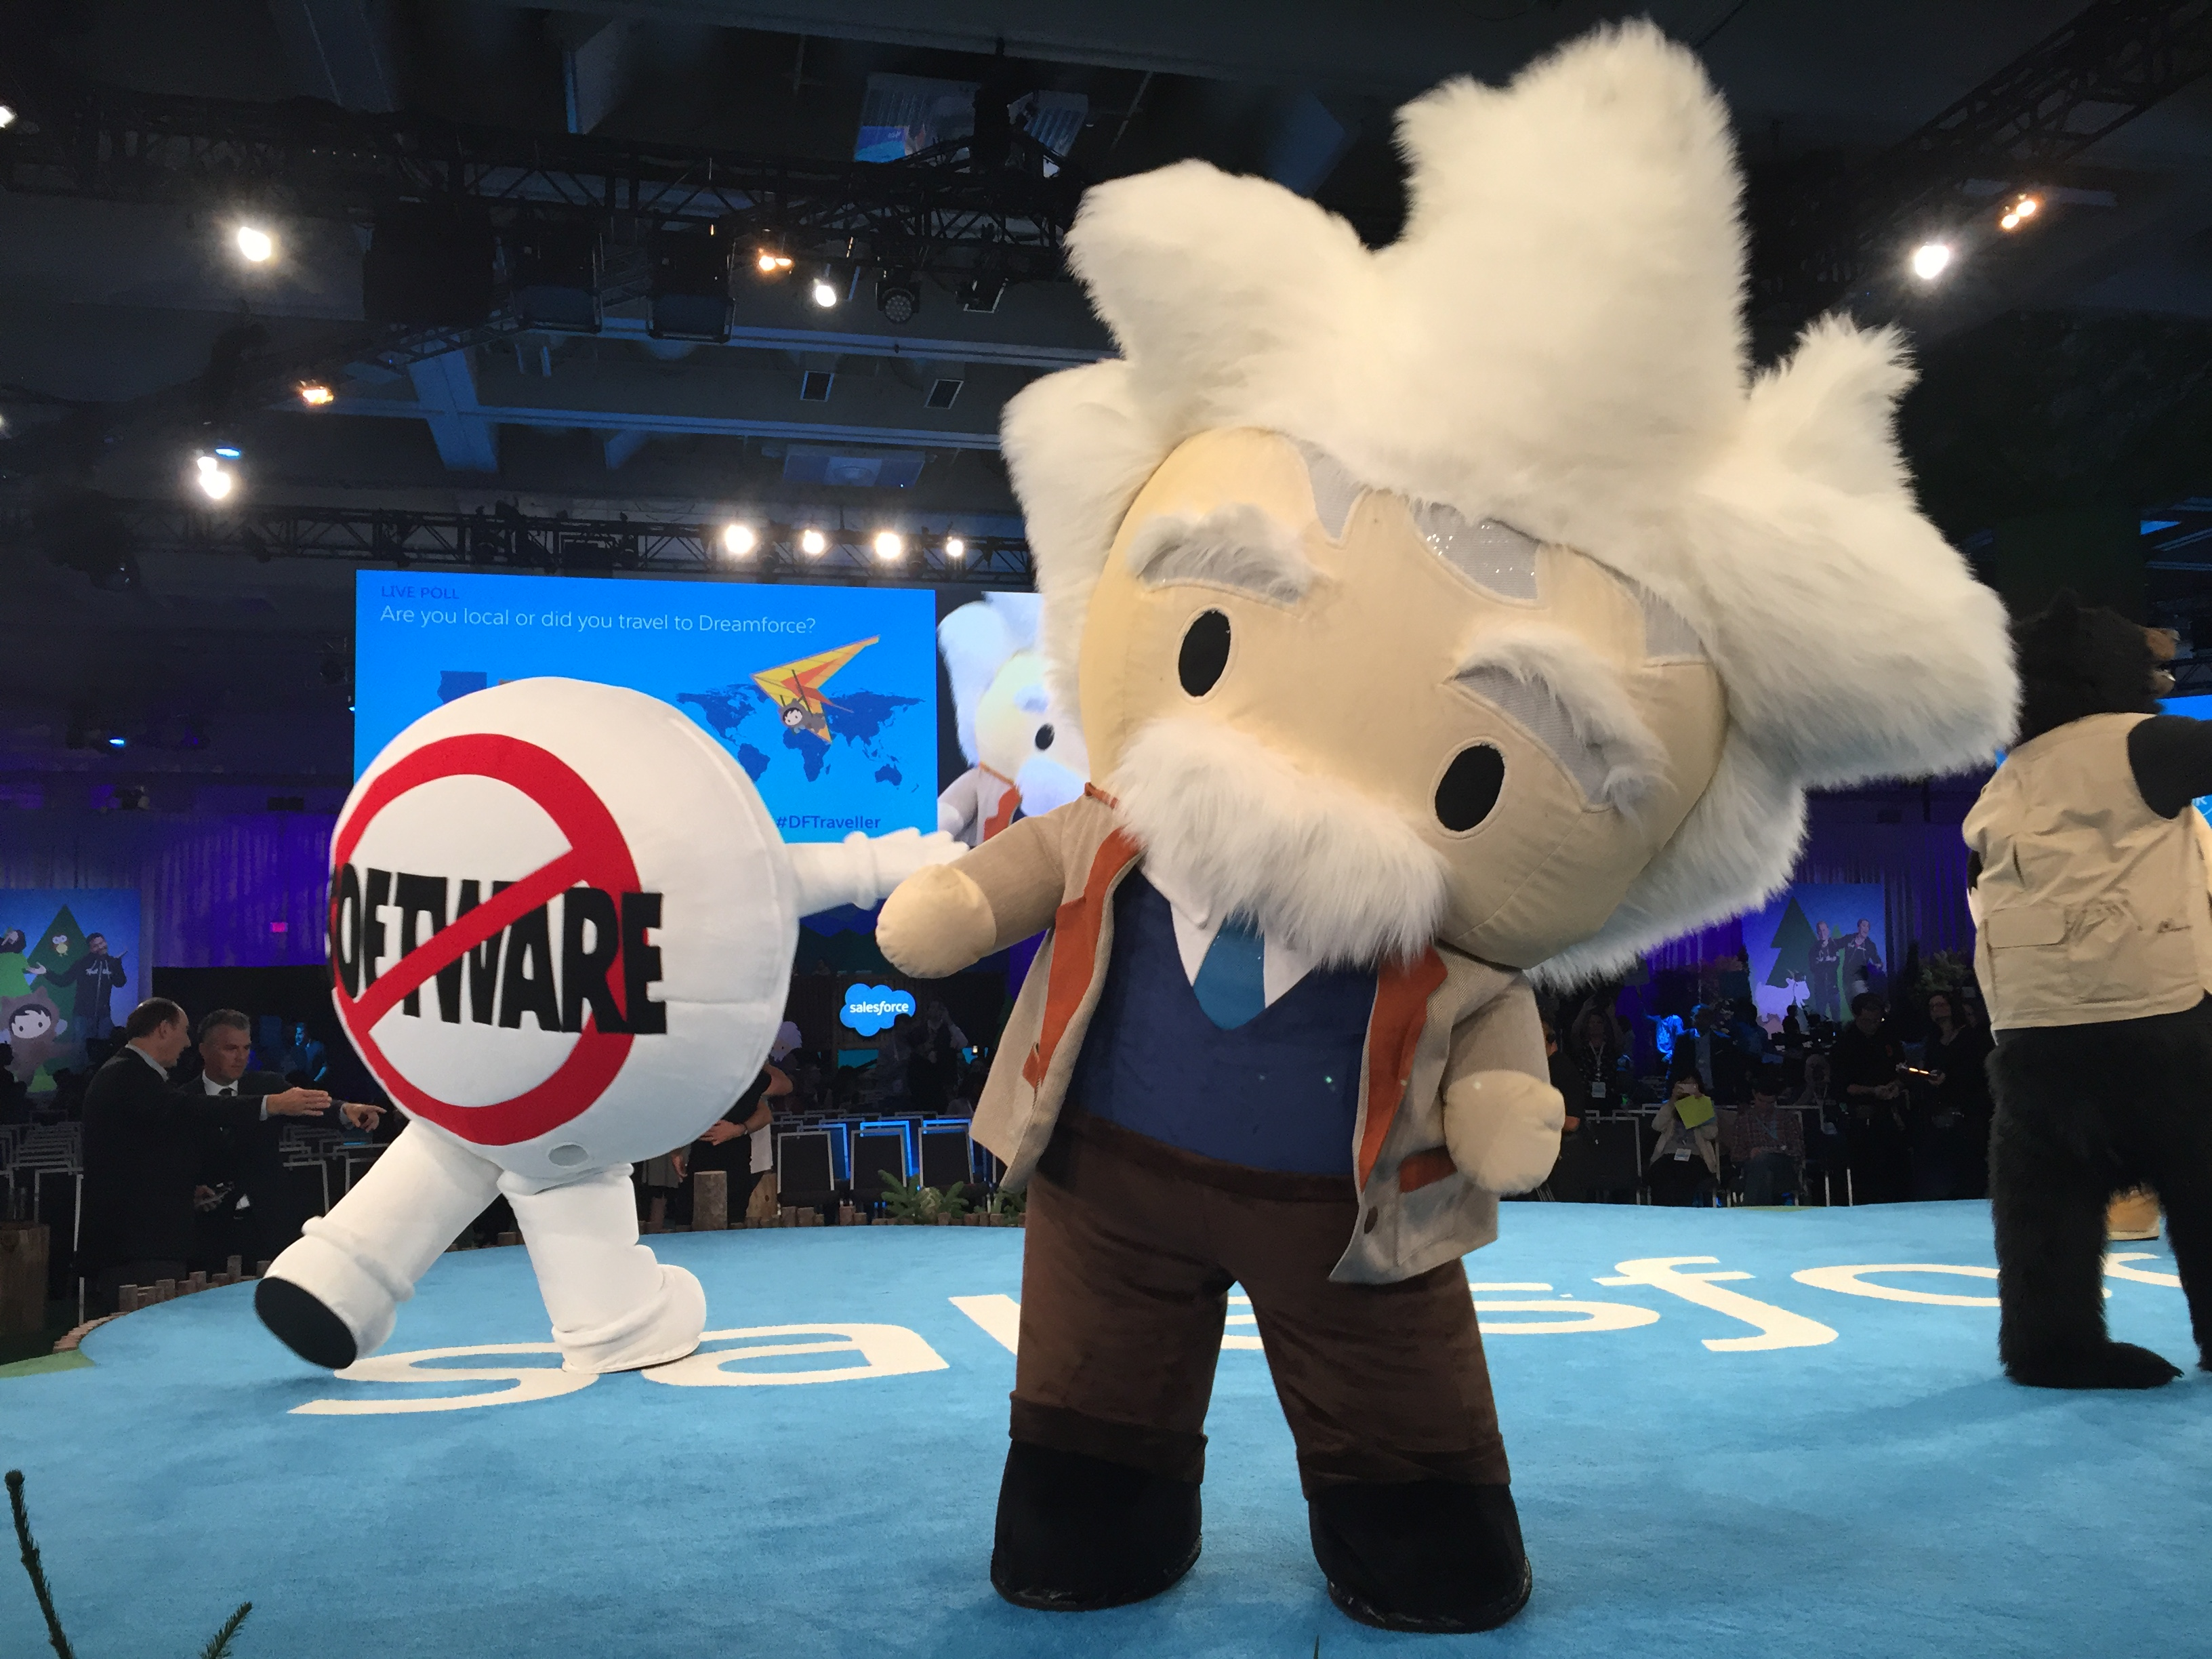 Salesforce's Dreamforce 2016 event.